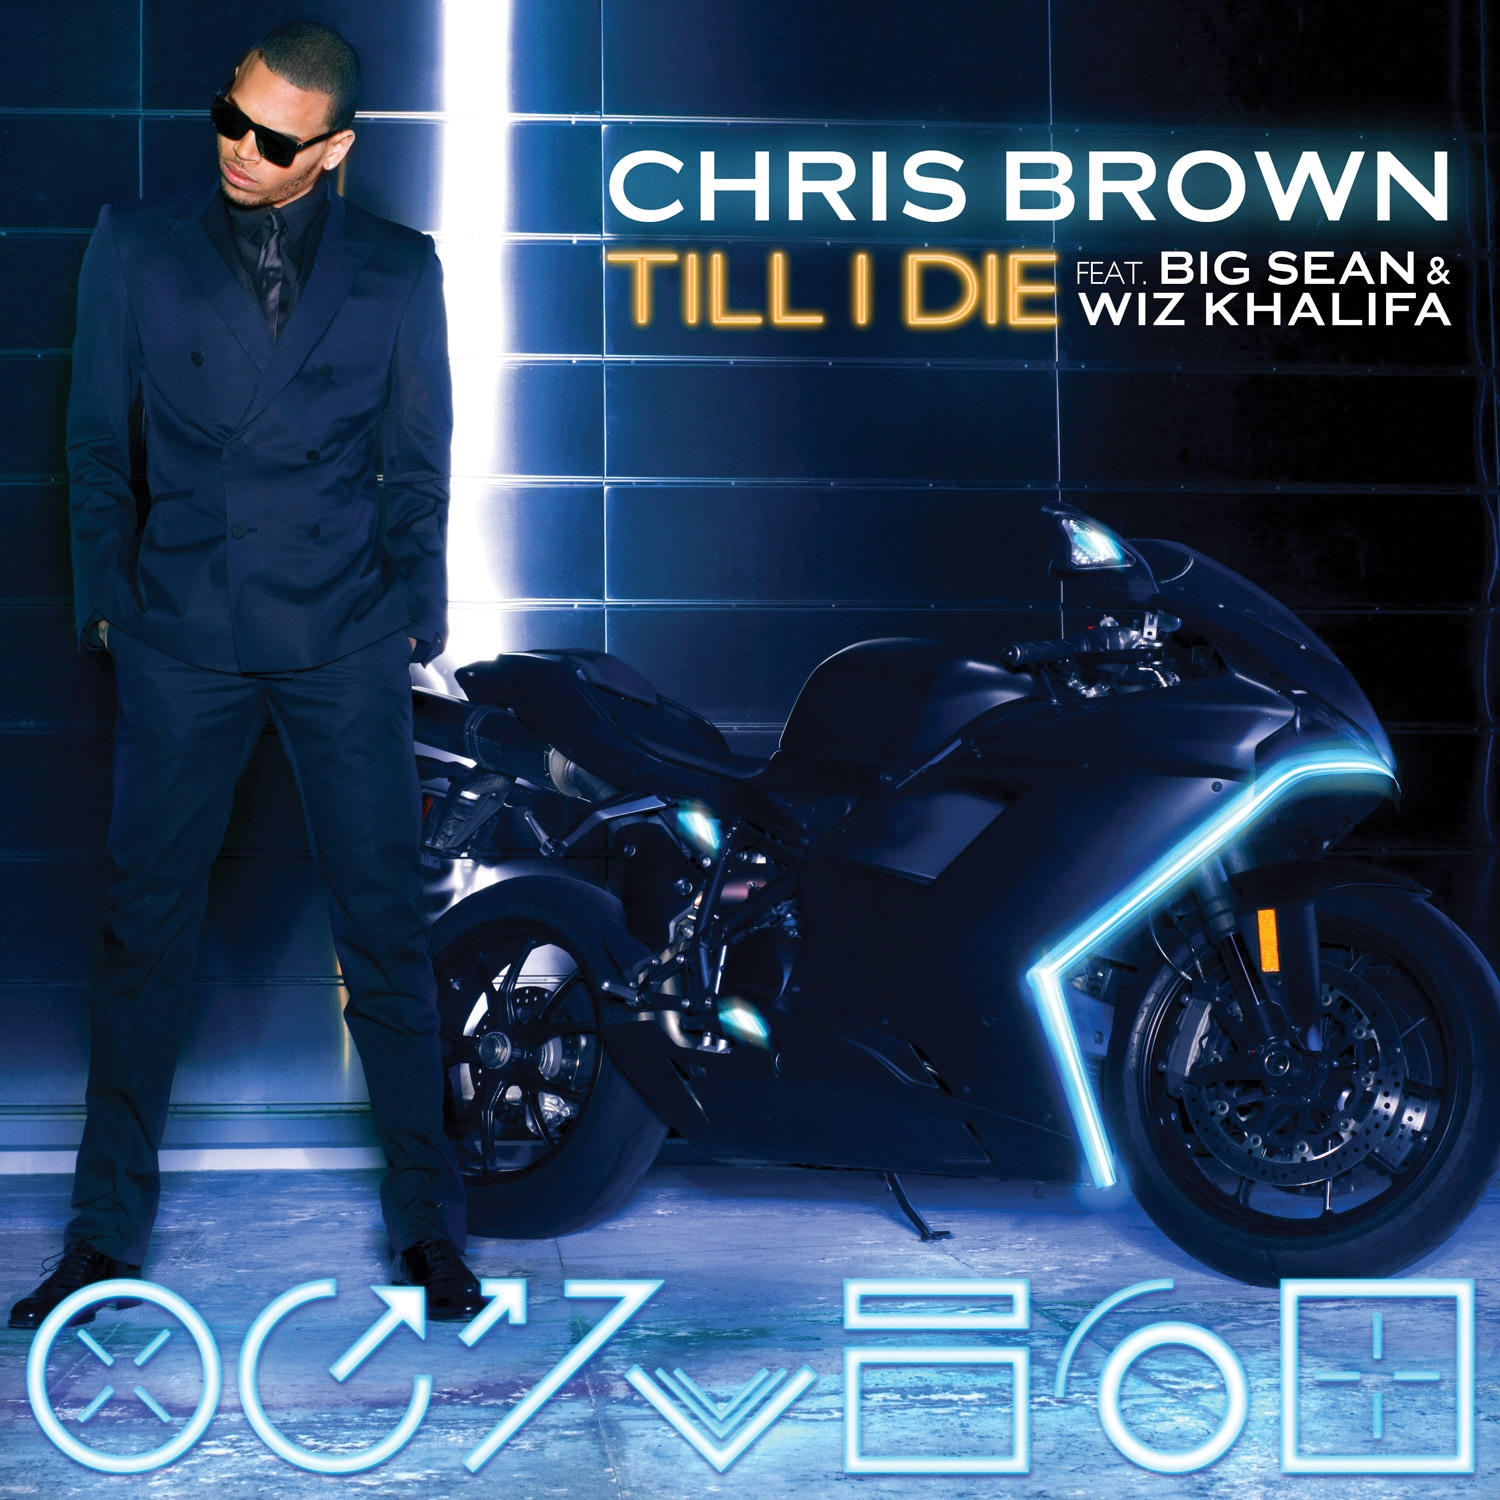 Listen to a new hiphop song Till I Die (ft. Big Sean and Wiz Khalifa) - Chris Brown